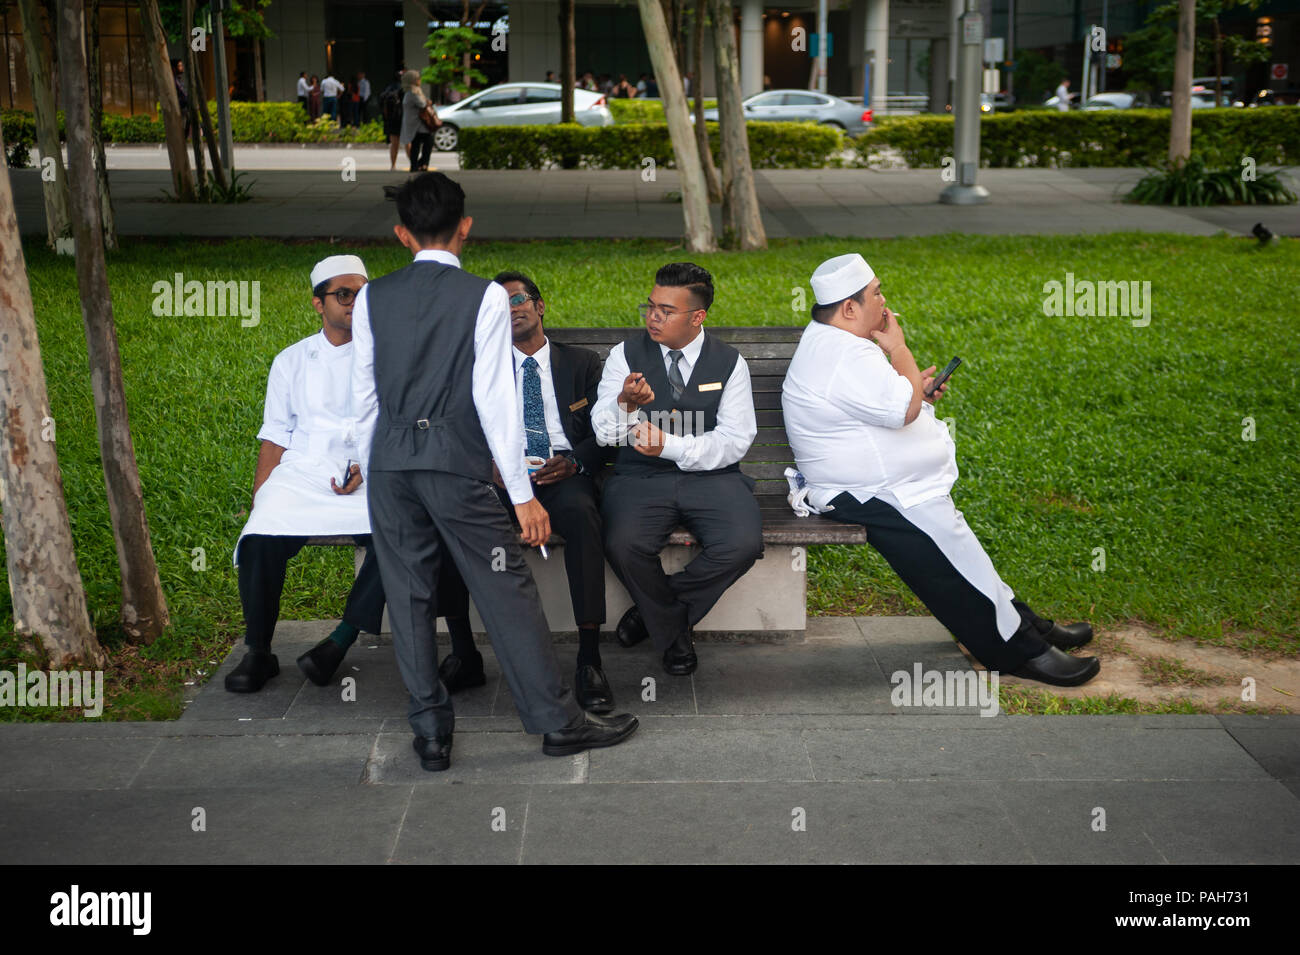 13.07.2018, Singapore, Republic of Singapore, Asia - A group of hotel employees is seen taking a short break on a bench in Marina Bay. - Stock Image